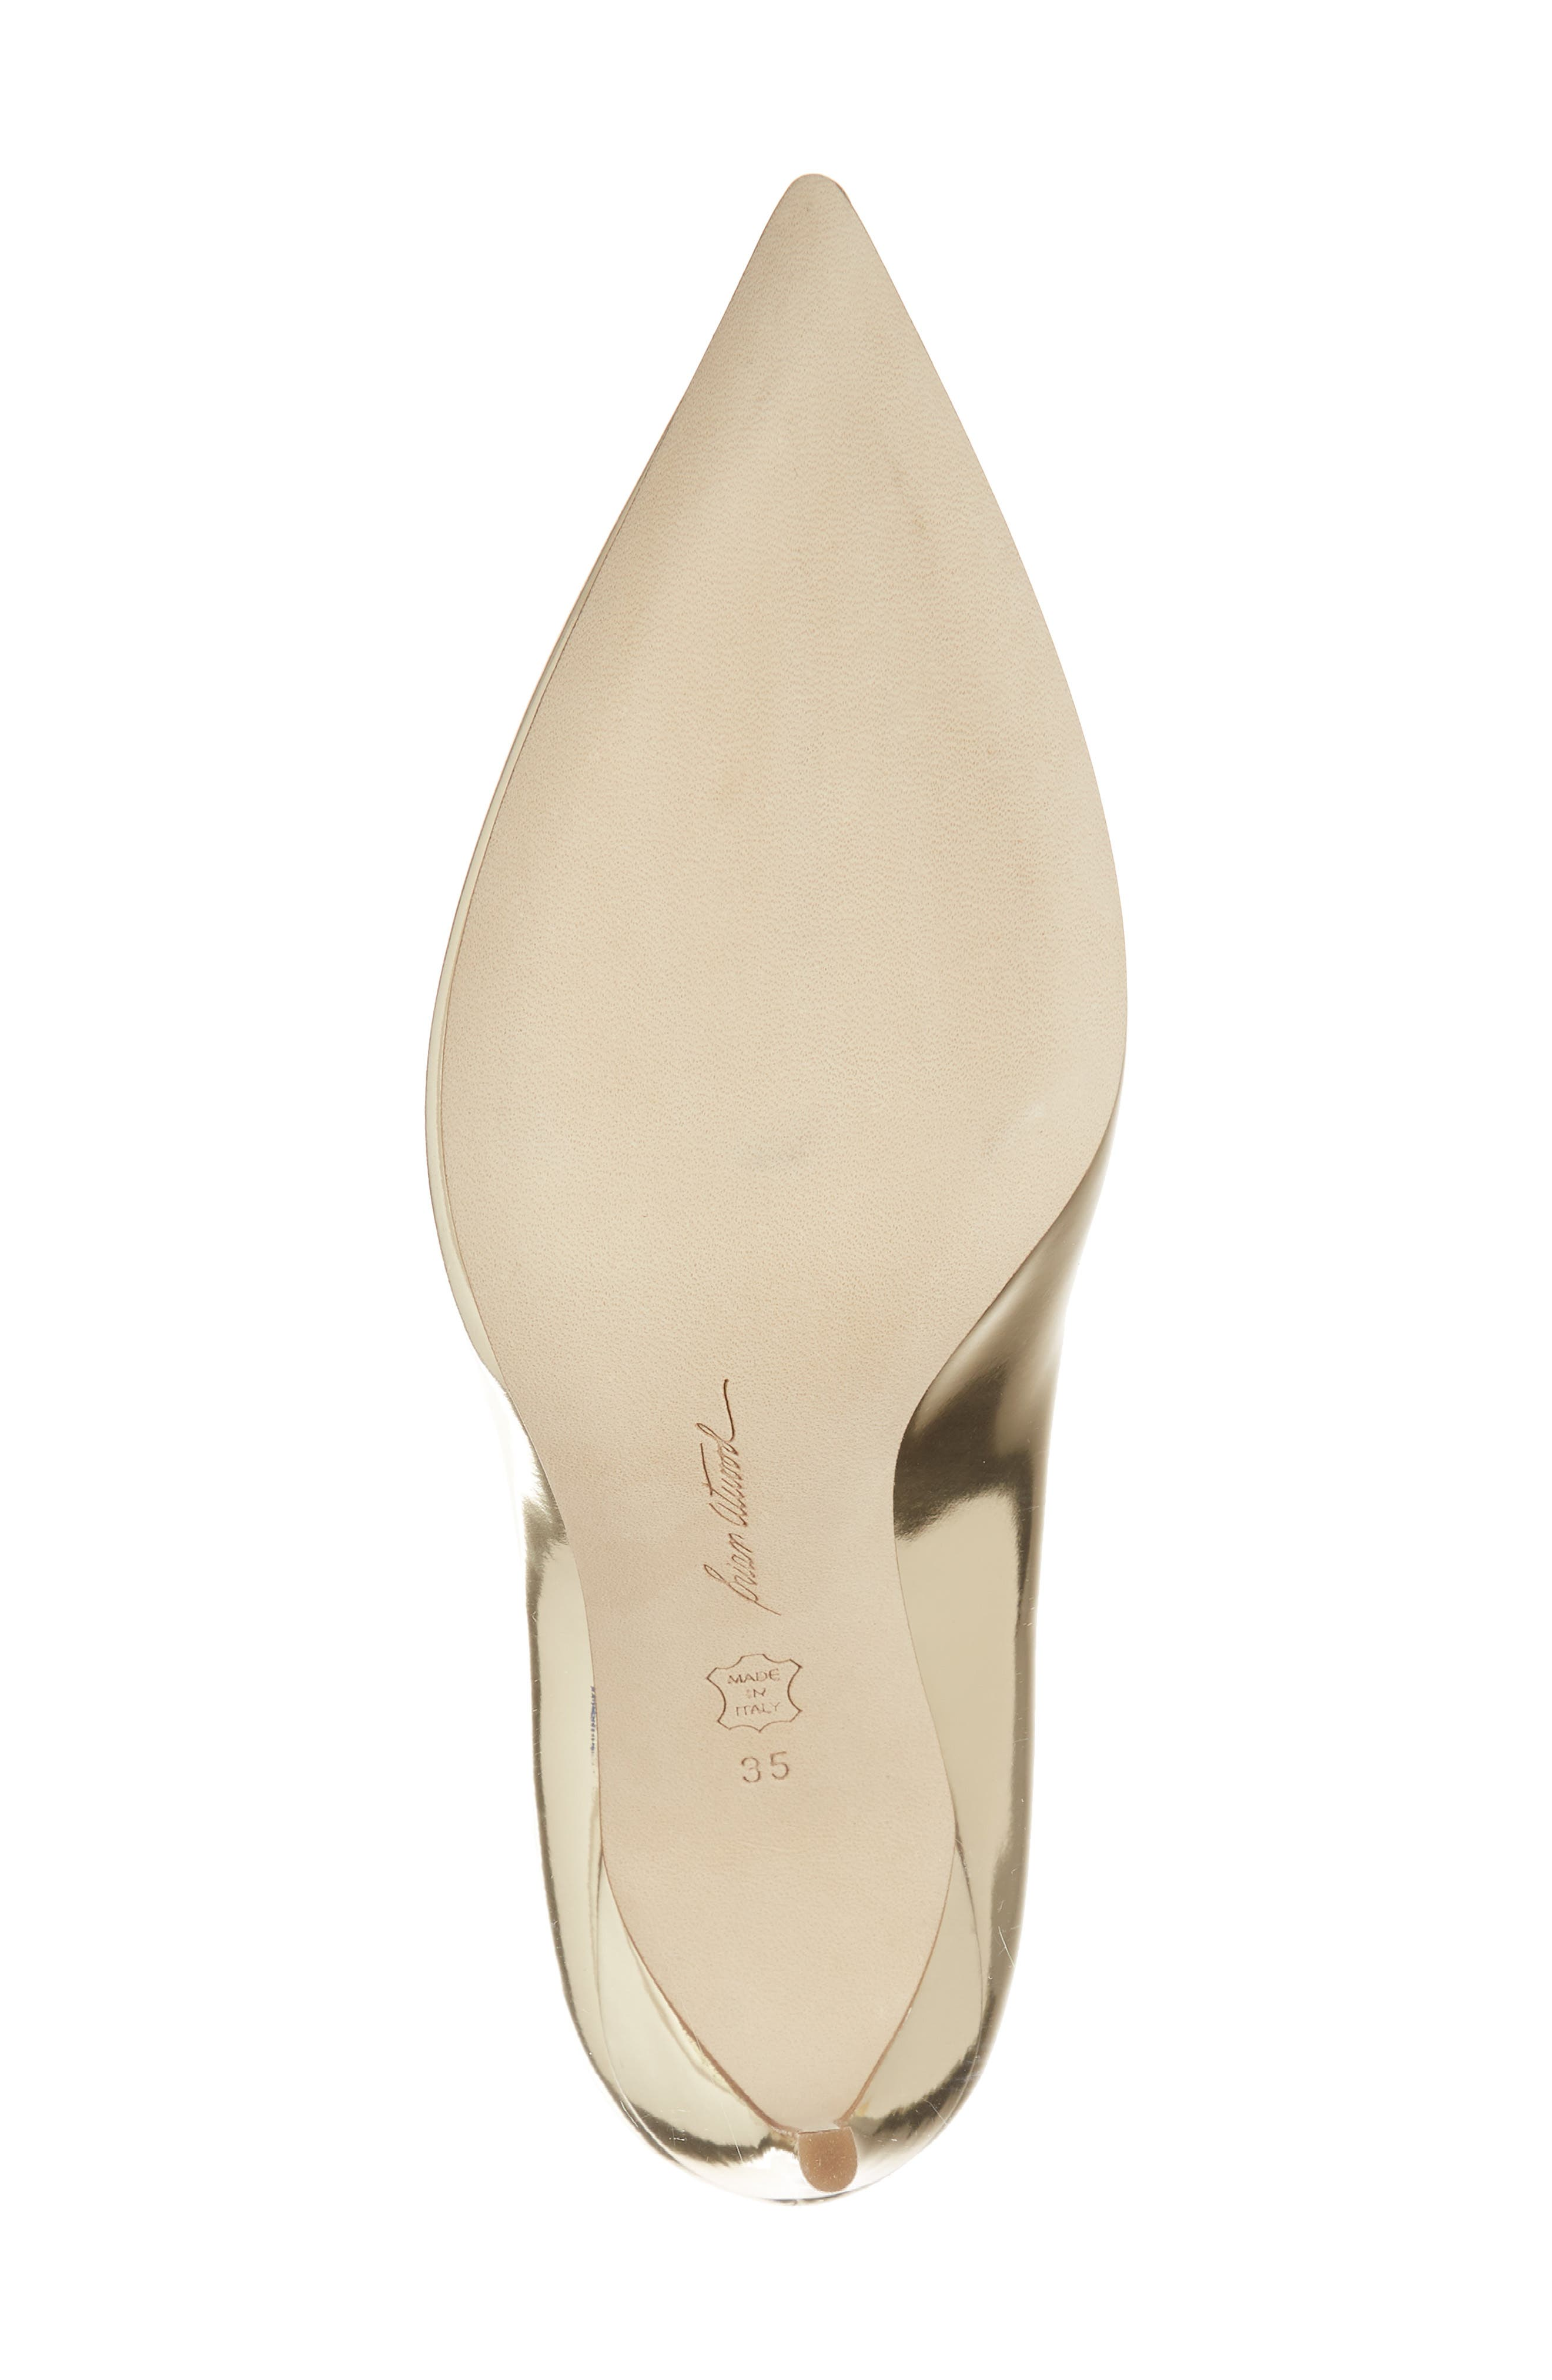 Valerie Pointy Toe Pump,                             Alternate thumbnail 6, color,                             Sahara Gold Specchio